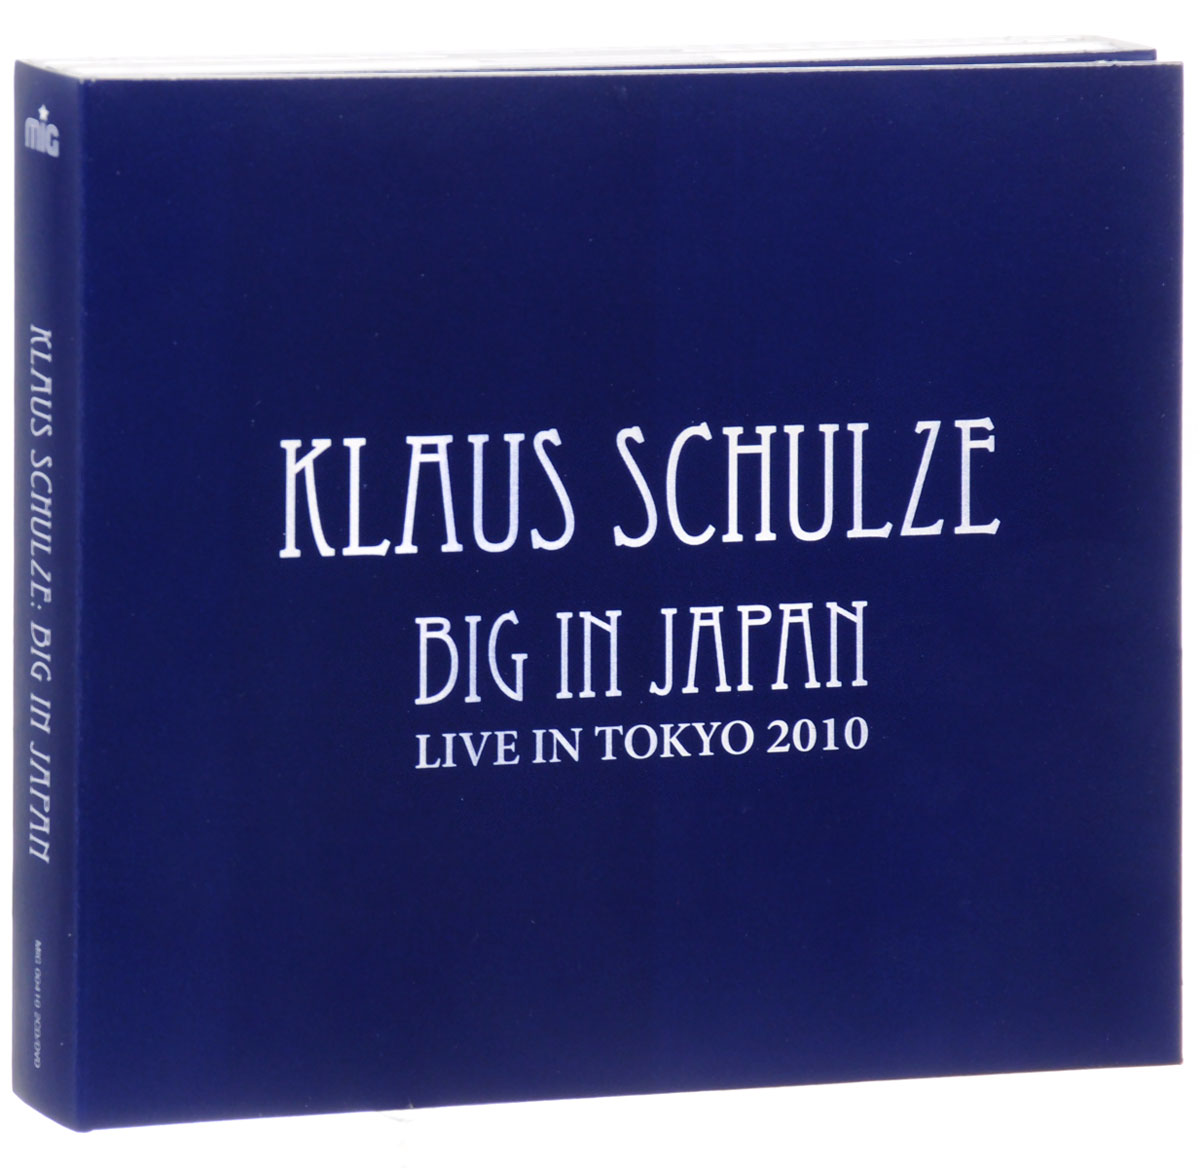 Klaus Schulze. Big In Japan (2 CD + DVD) cd диск krokus big rocks 1cd